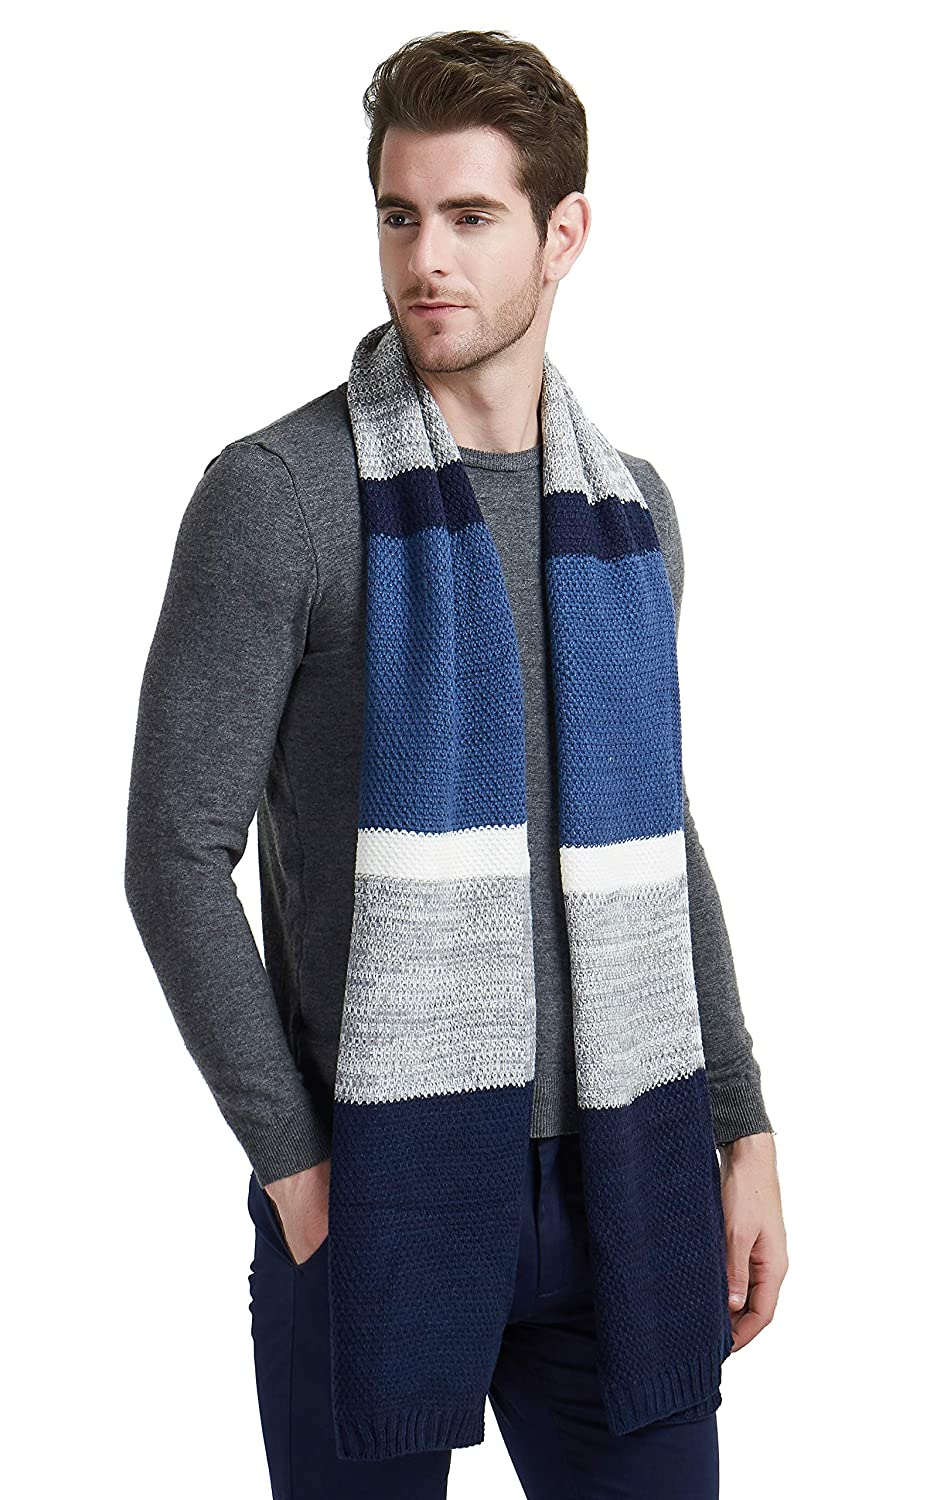 EINSKEY Mens Winter Wool Scarf, Unisex Fashion Cable Knit Cashmere Feel Scarf, Classic Color Block Striped Long Scarf Cashmere Scarf